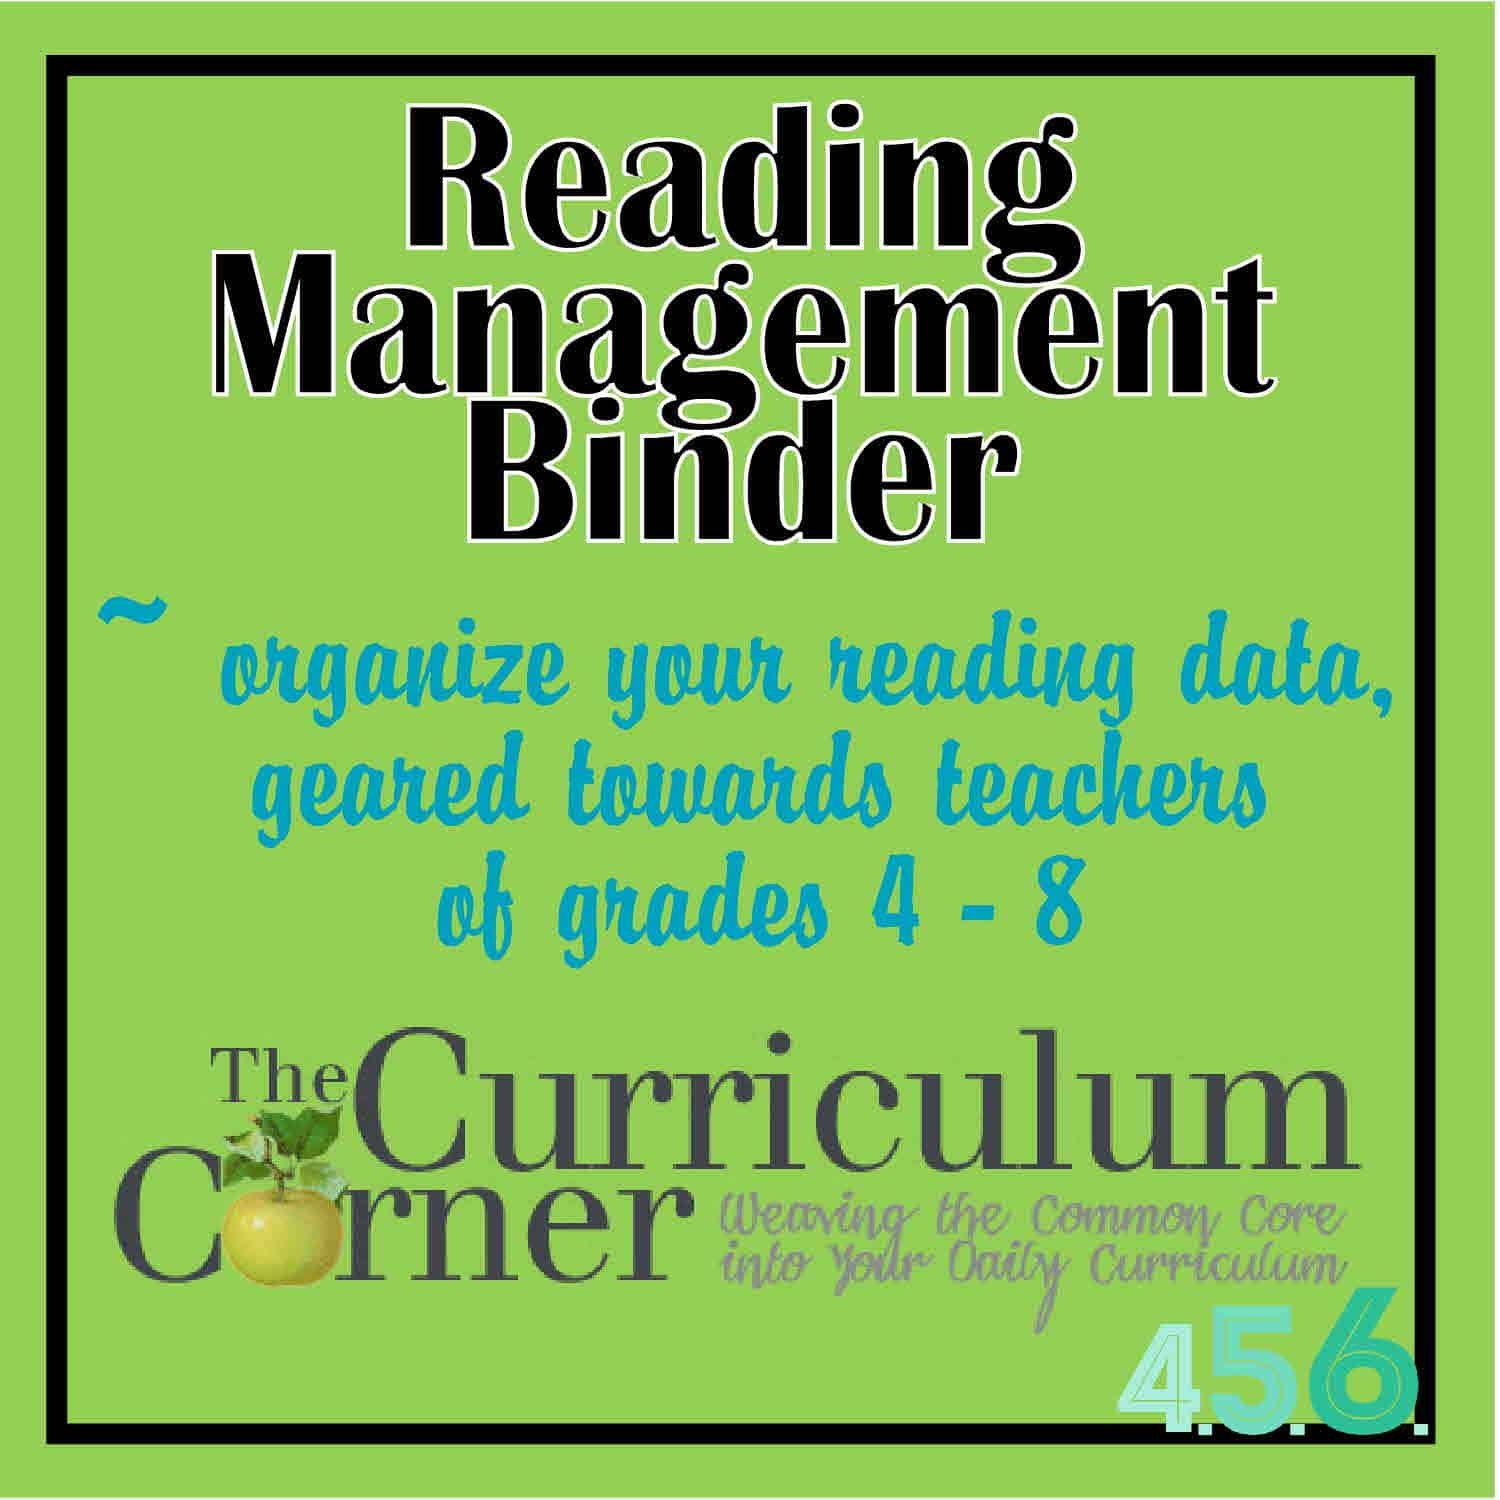 Reading Management Binder for Grades 4-5-6